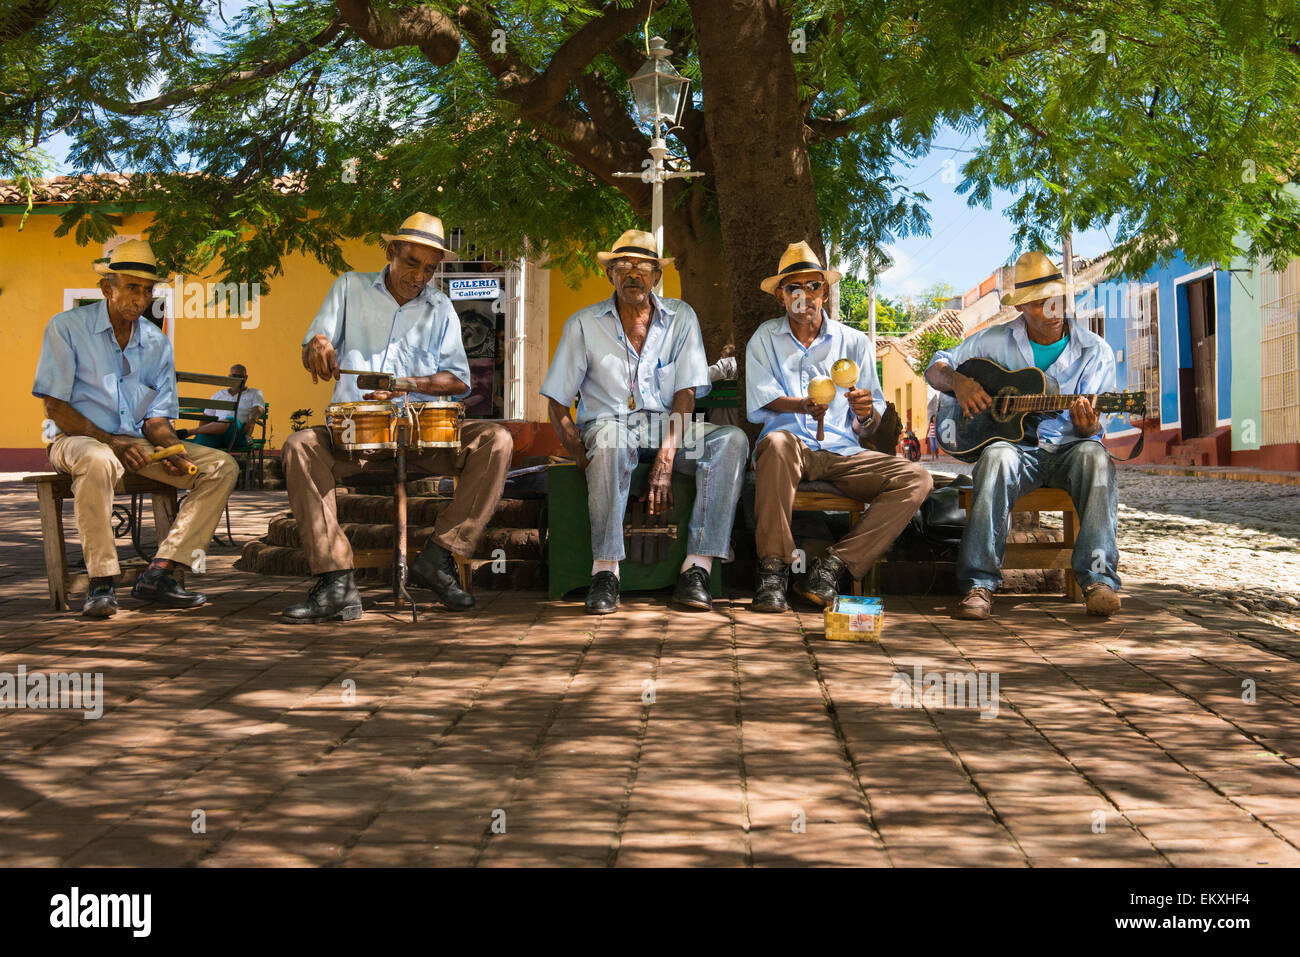 Cuba Trinidad Plaza Mayor area musical group band busk buskers musicians play instruments shade tree by Iglesia - Stock Image